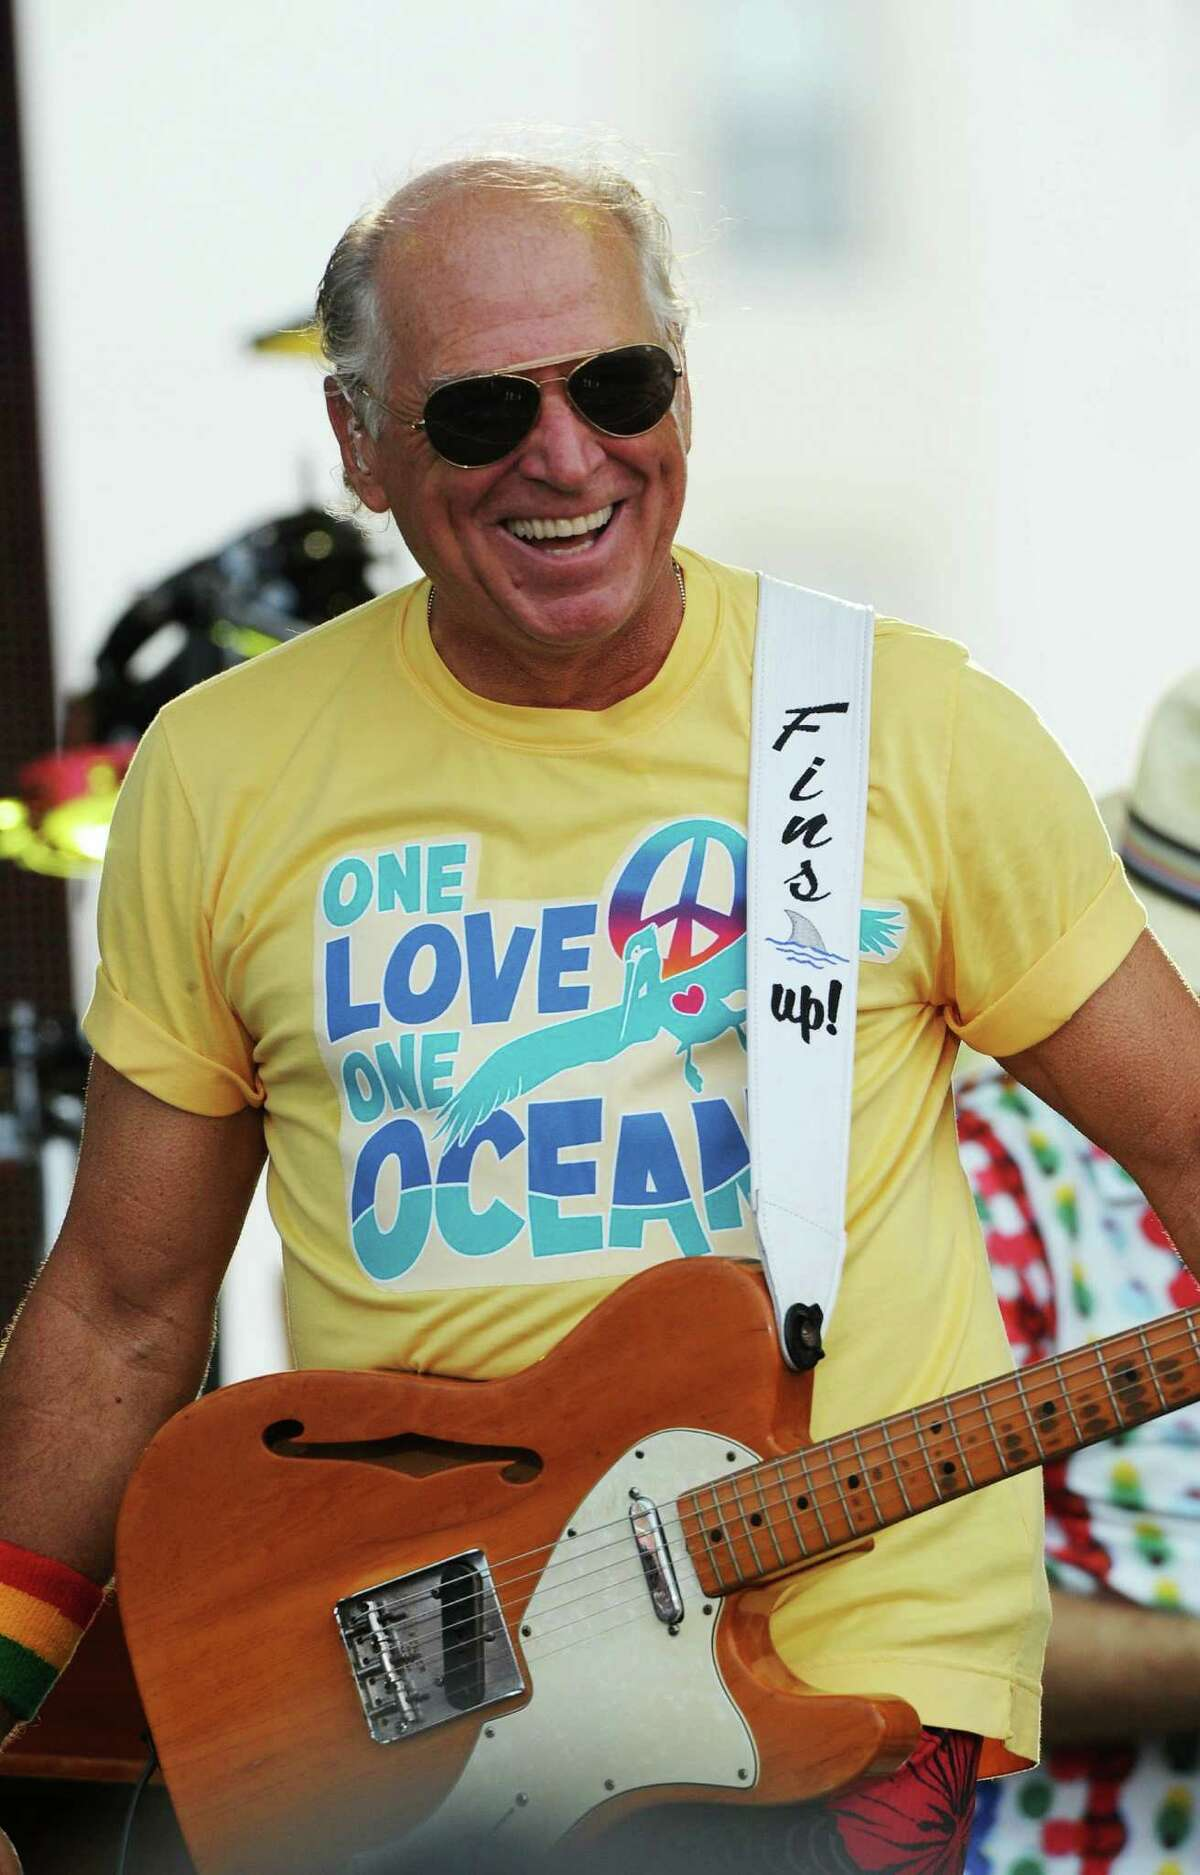 Jimmy Buffett played 18 concerts in Houston from 1975 to 1986. Since then, he's played an additional 26 shows, all at bigger venues.